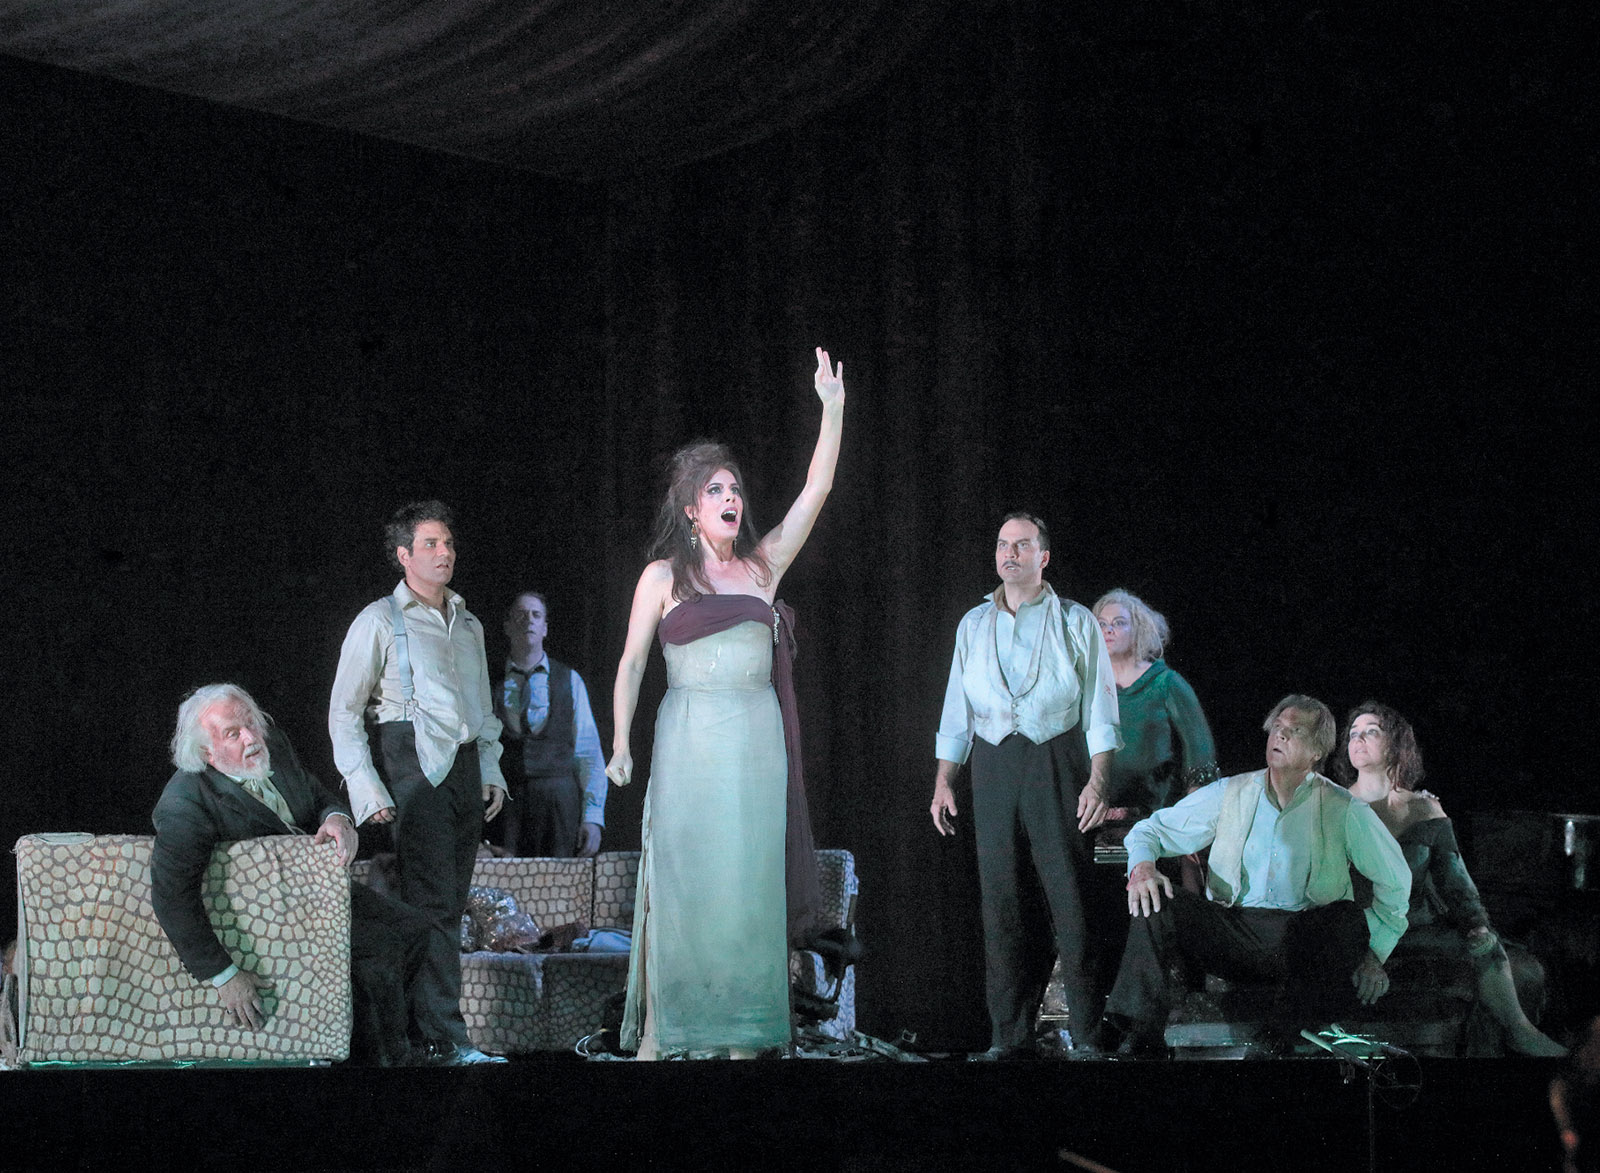 Audrey Luna as Leticia Maynar in The Exterminating Angel at the Metropolitan Opera, New York City